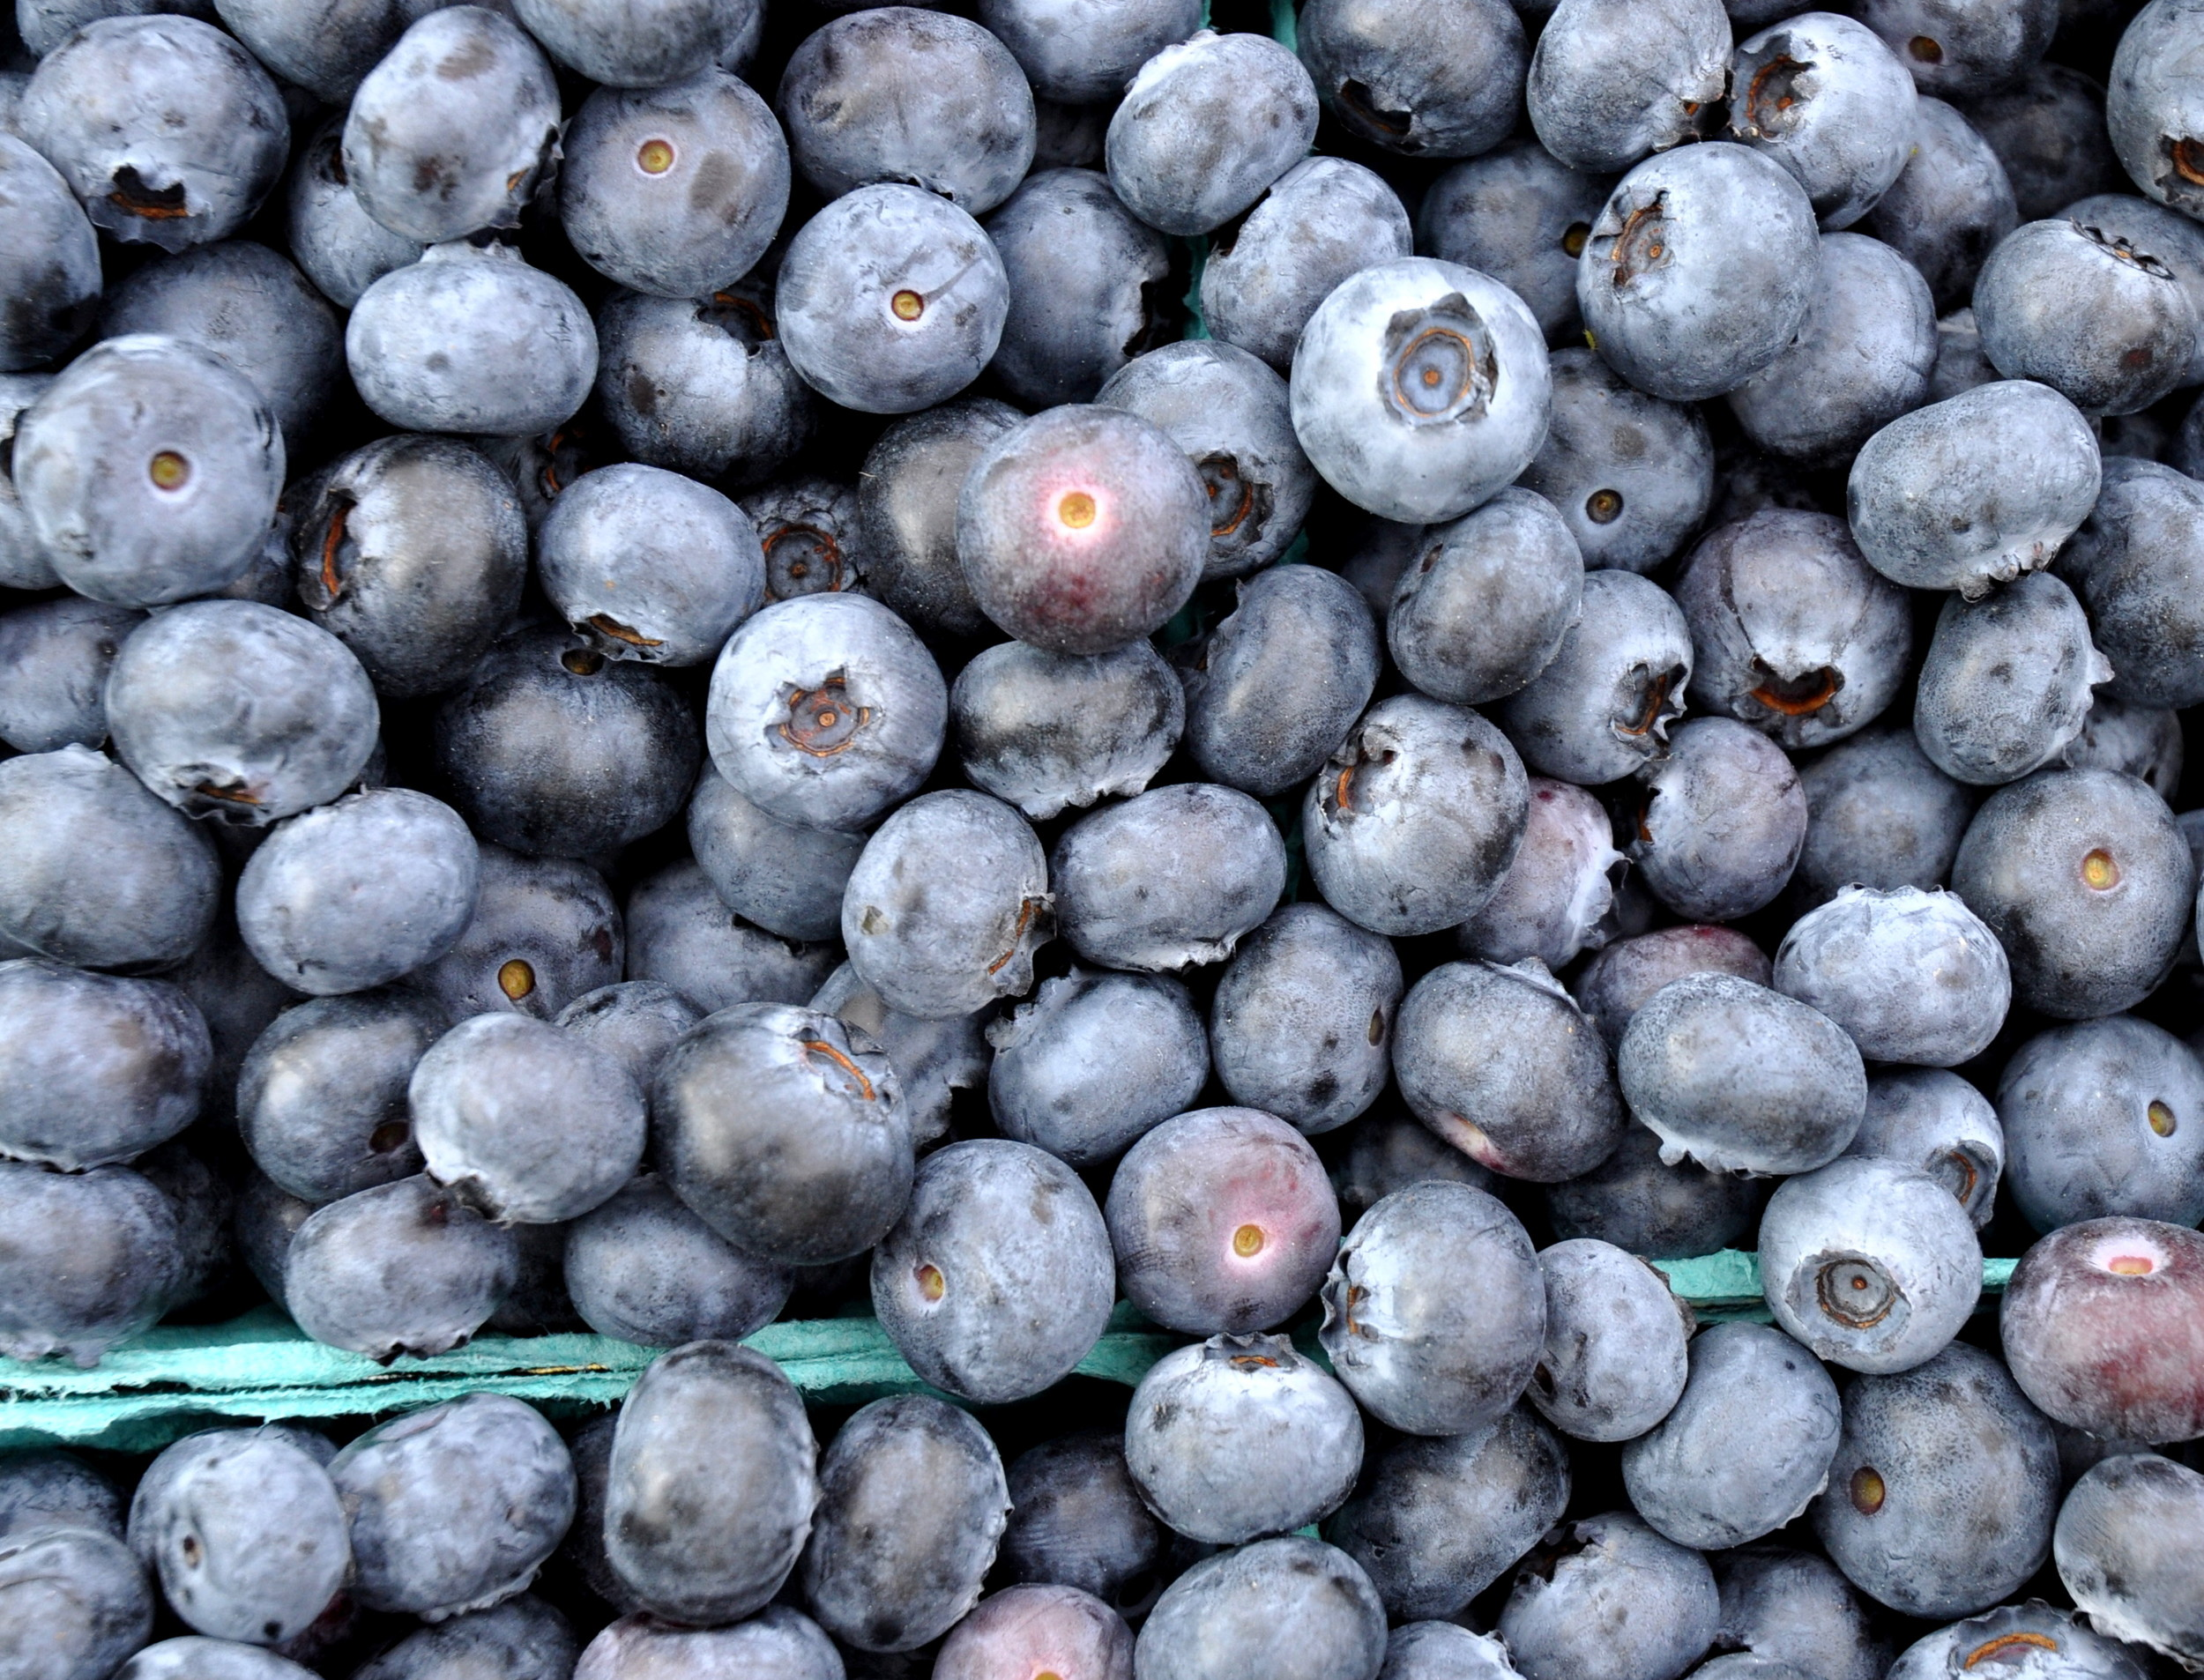 Organic blueberries from Whitehorse Meadows Blueberry Farm. Photo copyright 2011 by Zachary D. Lyons.